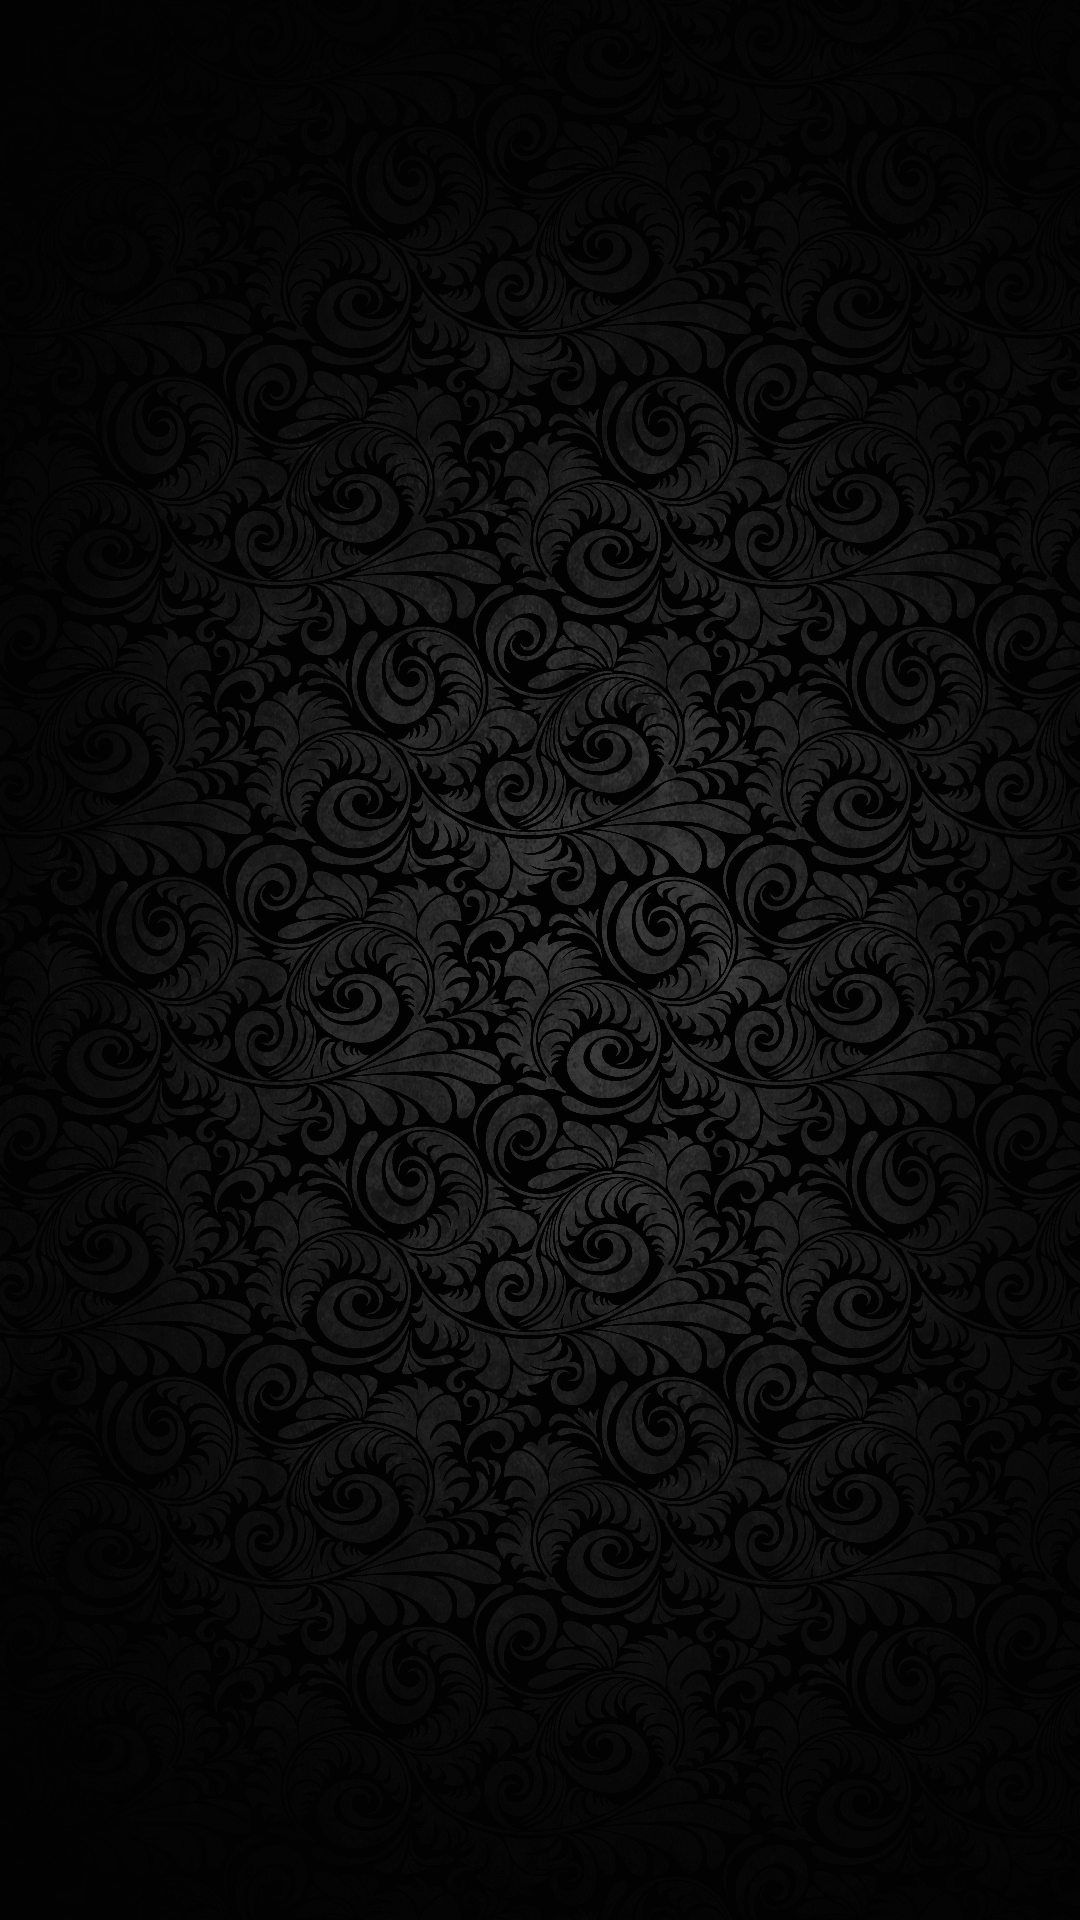 Zendha Black Wallpaper Android Full Hd